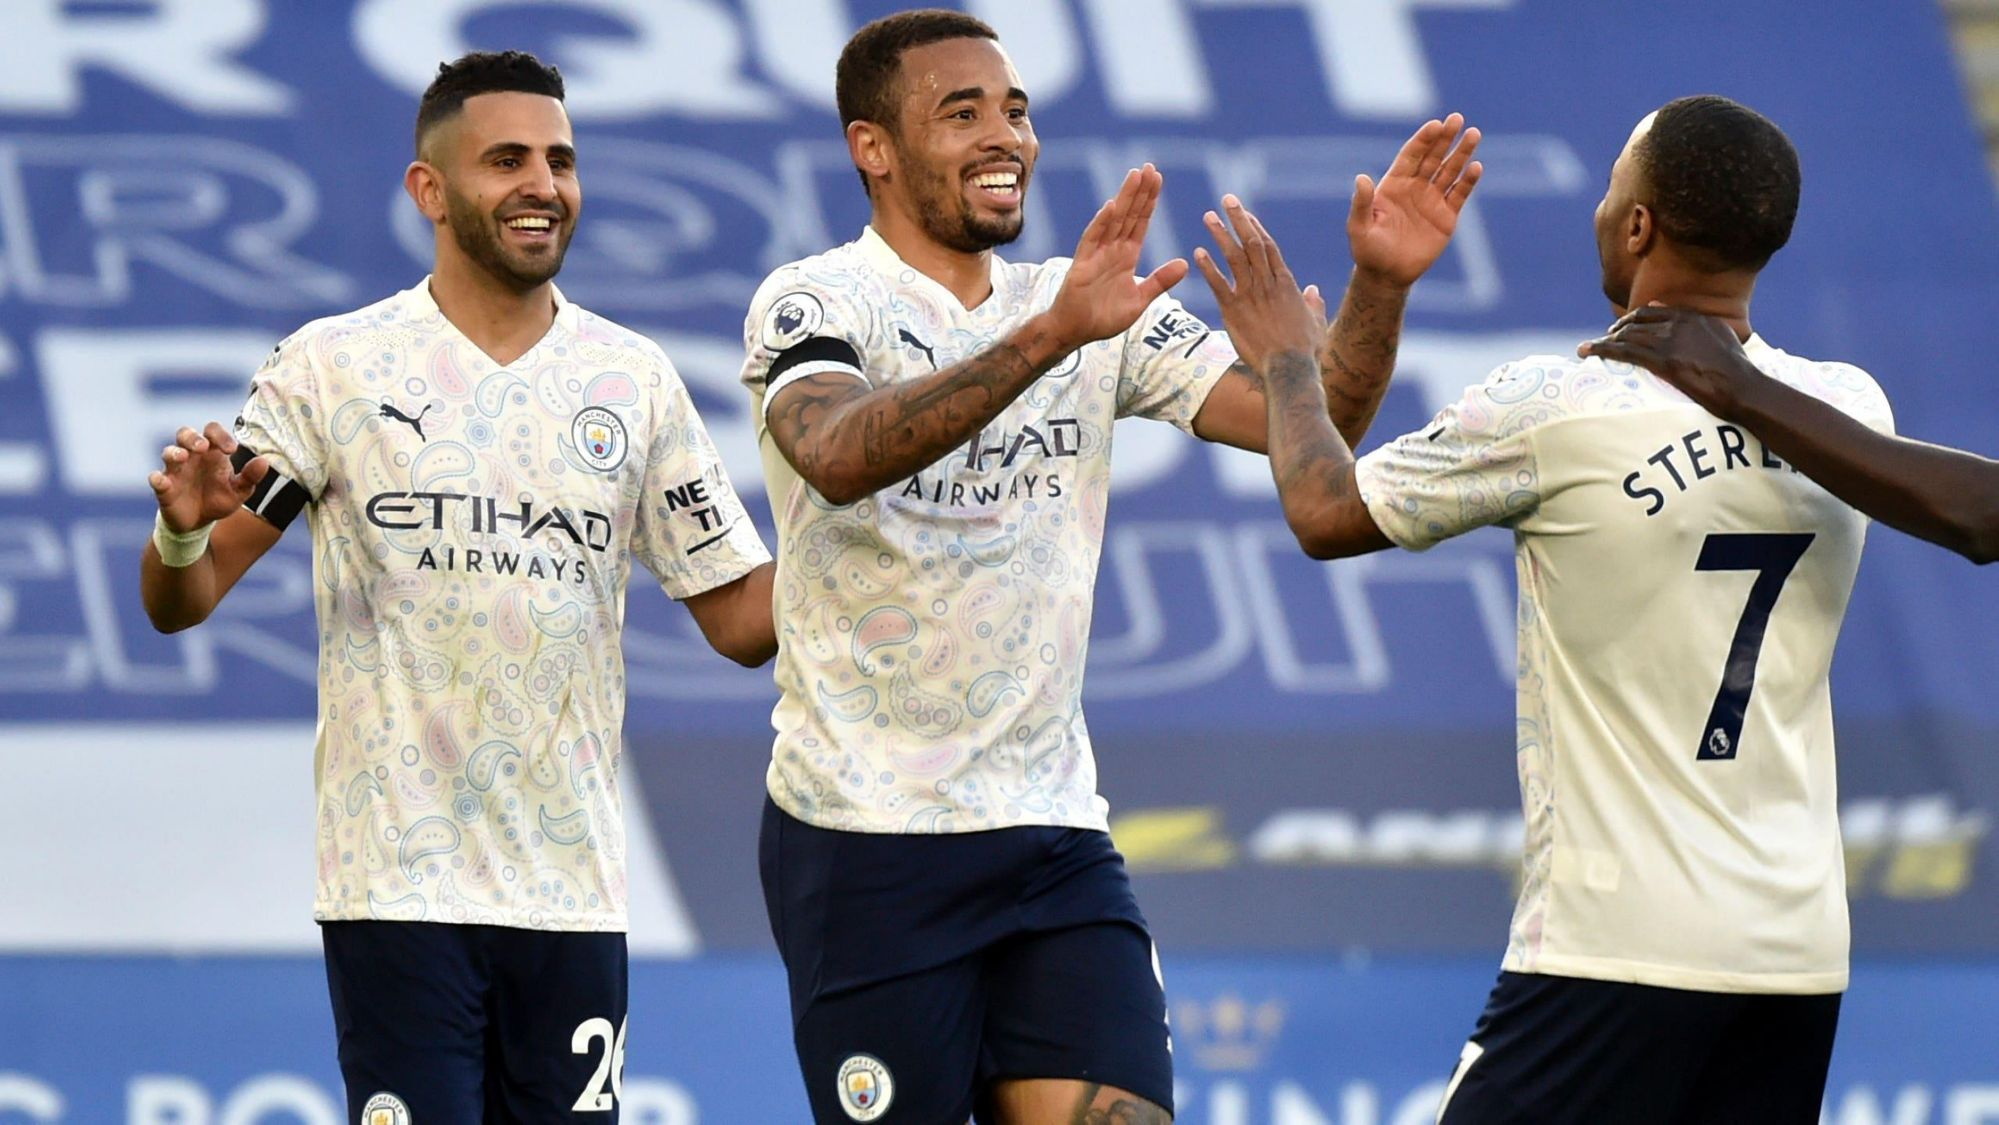 birthday-boy-gabriel-jesus-on-target-as-leaders-man-city-ease-past-leicester